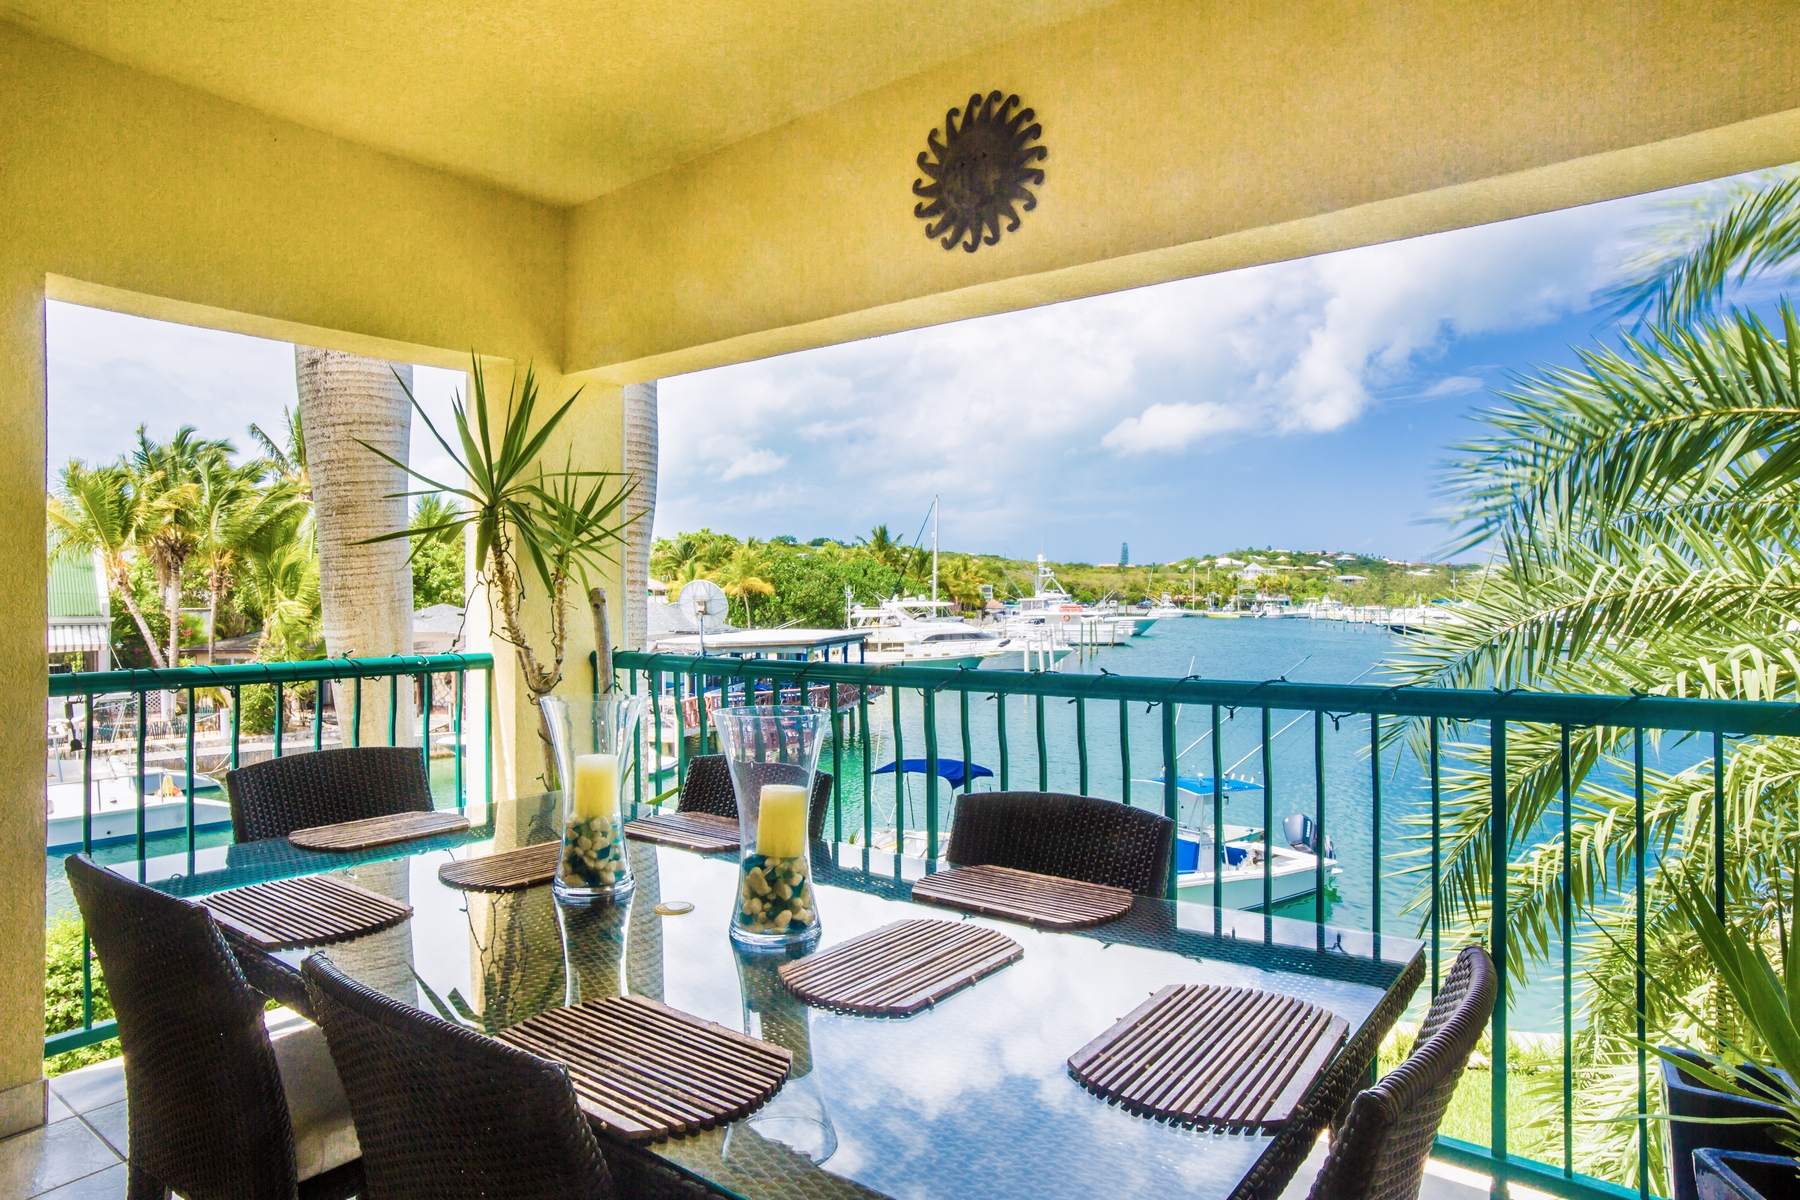 Condominium for Sale at The Yacht Club - B1 Turtle Cove, Providenciales TCI BWI Turks And Caicos Islands